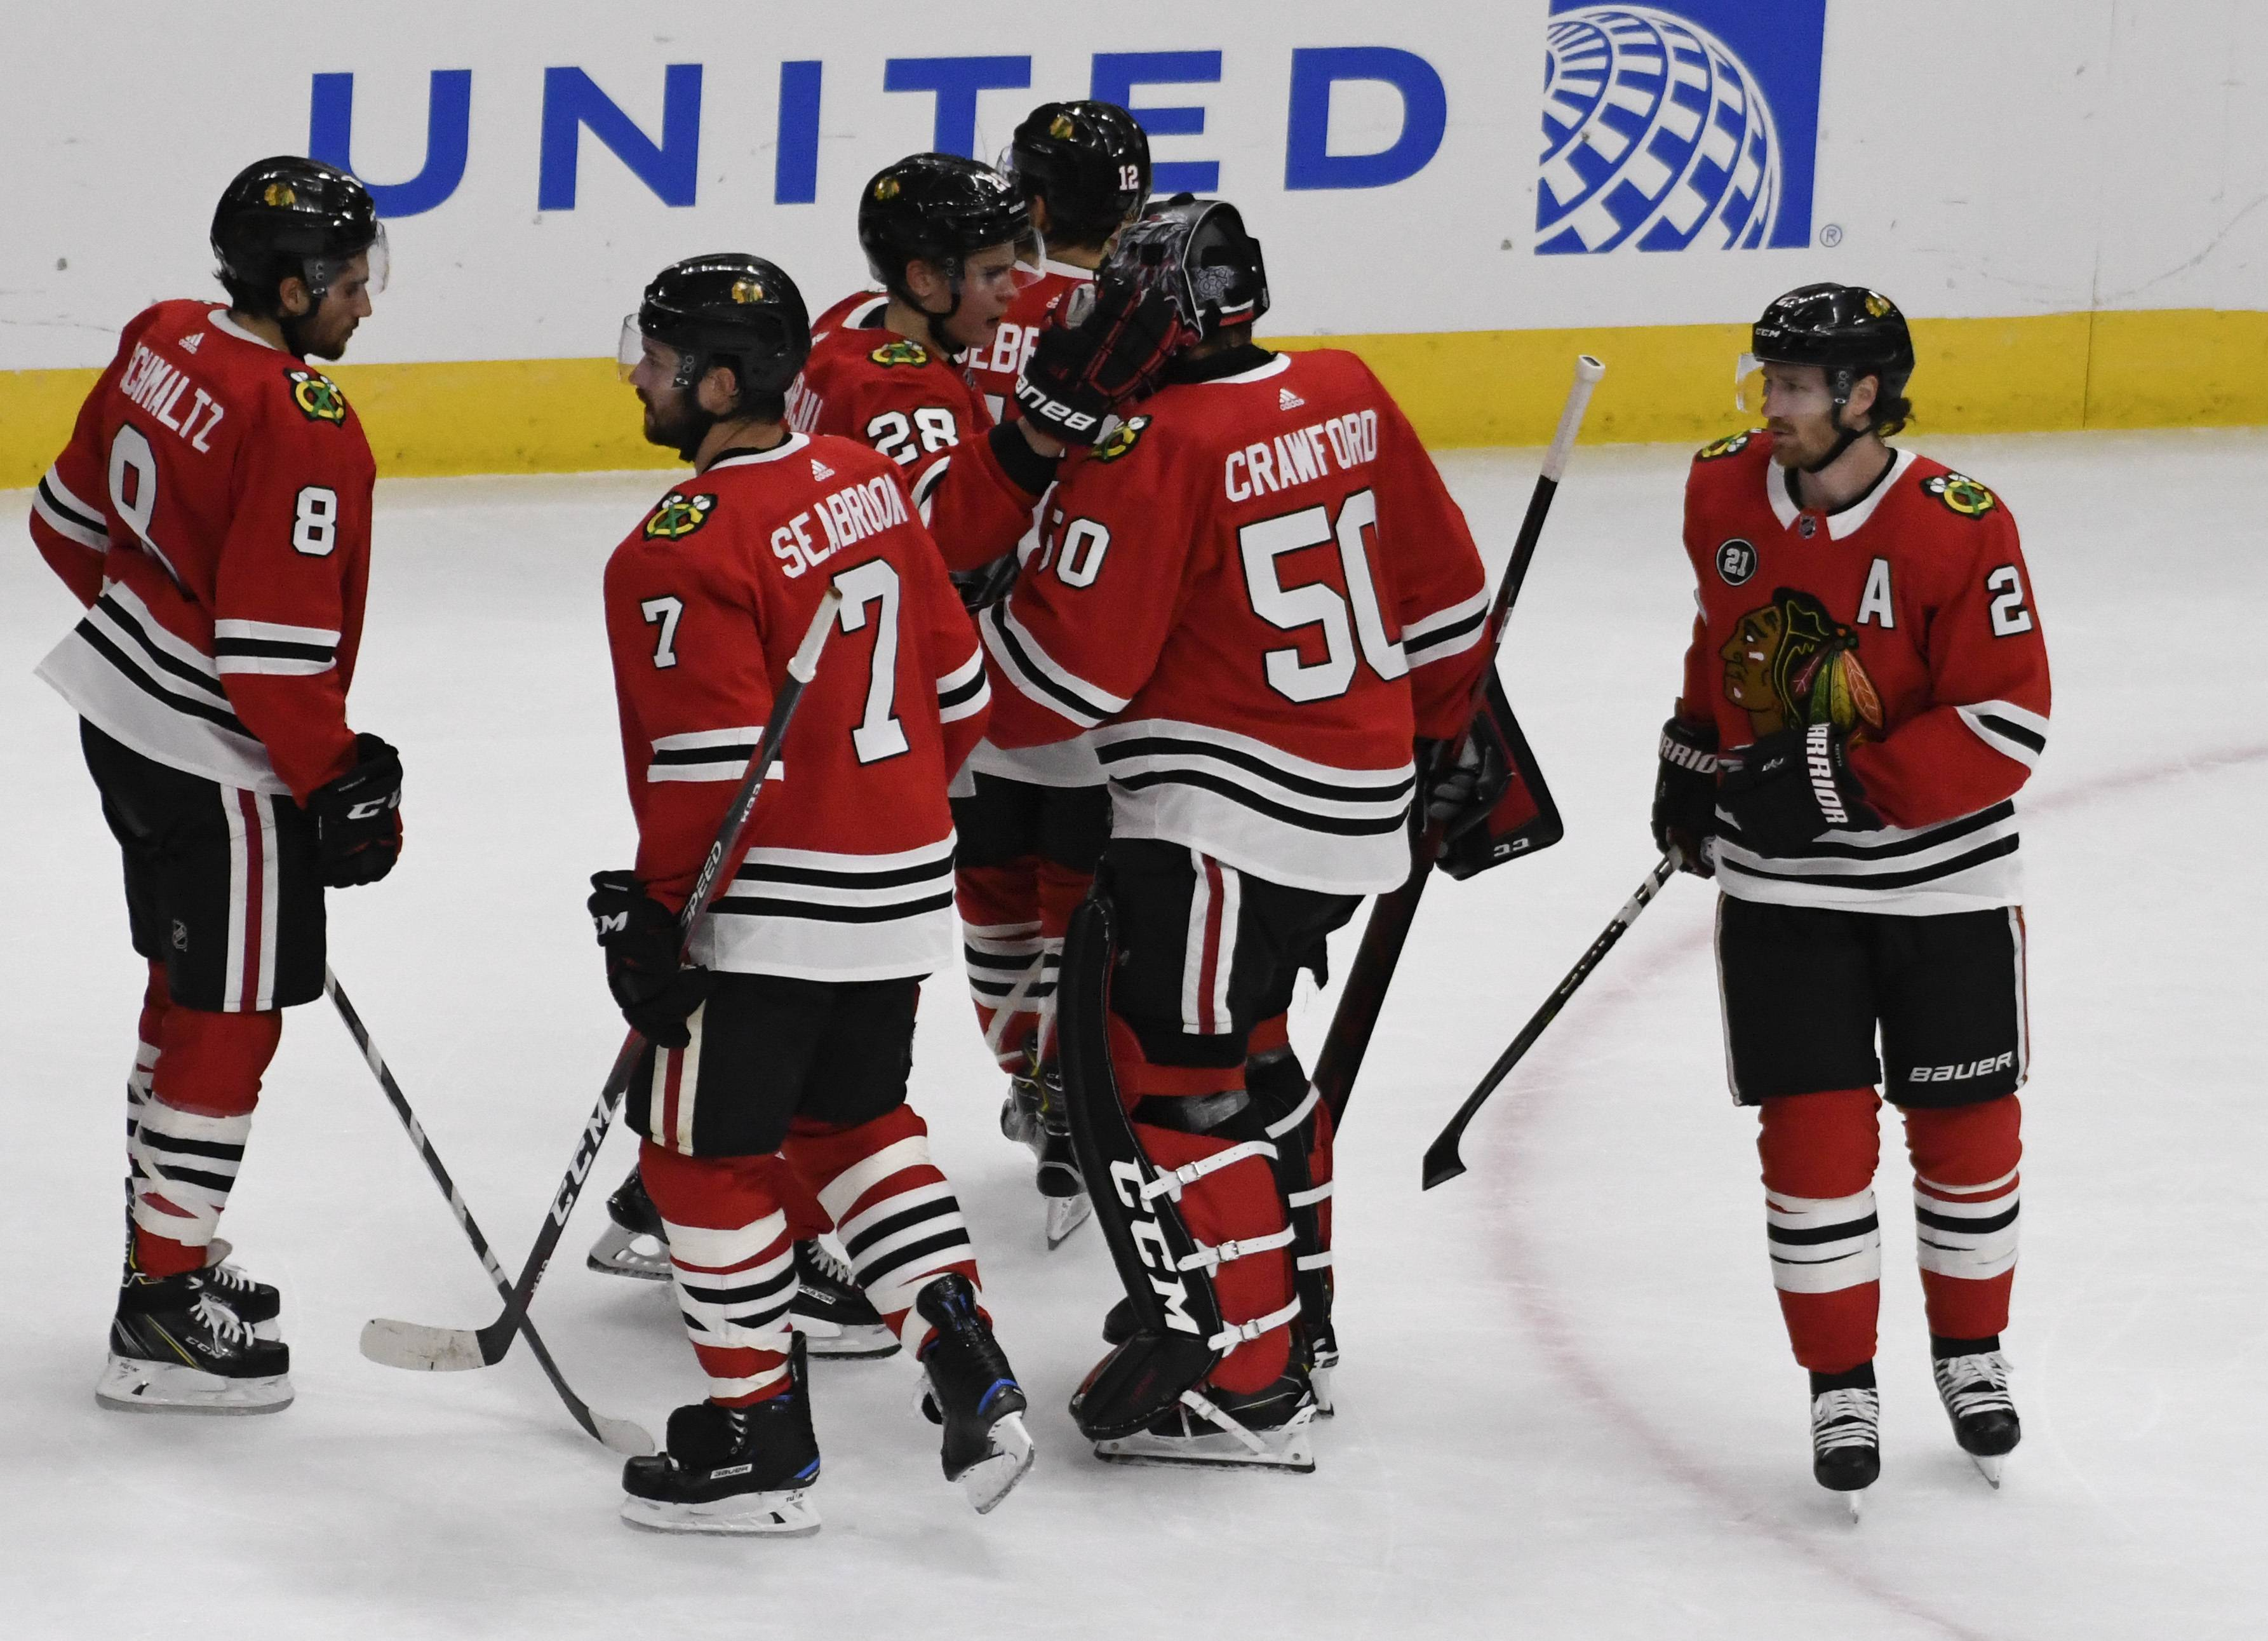 Chicago Blackhawks goaltender Corey Crawford (50) is greeted by his teammates after playing in first game after an injury in an NHL hockey game against the Arizona Coyotes Thursday, Oct. 18, 2018, in Chicago. The Coyotes won 4-1. (AP Photo/David Banks)